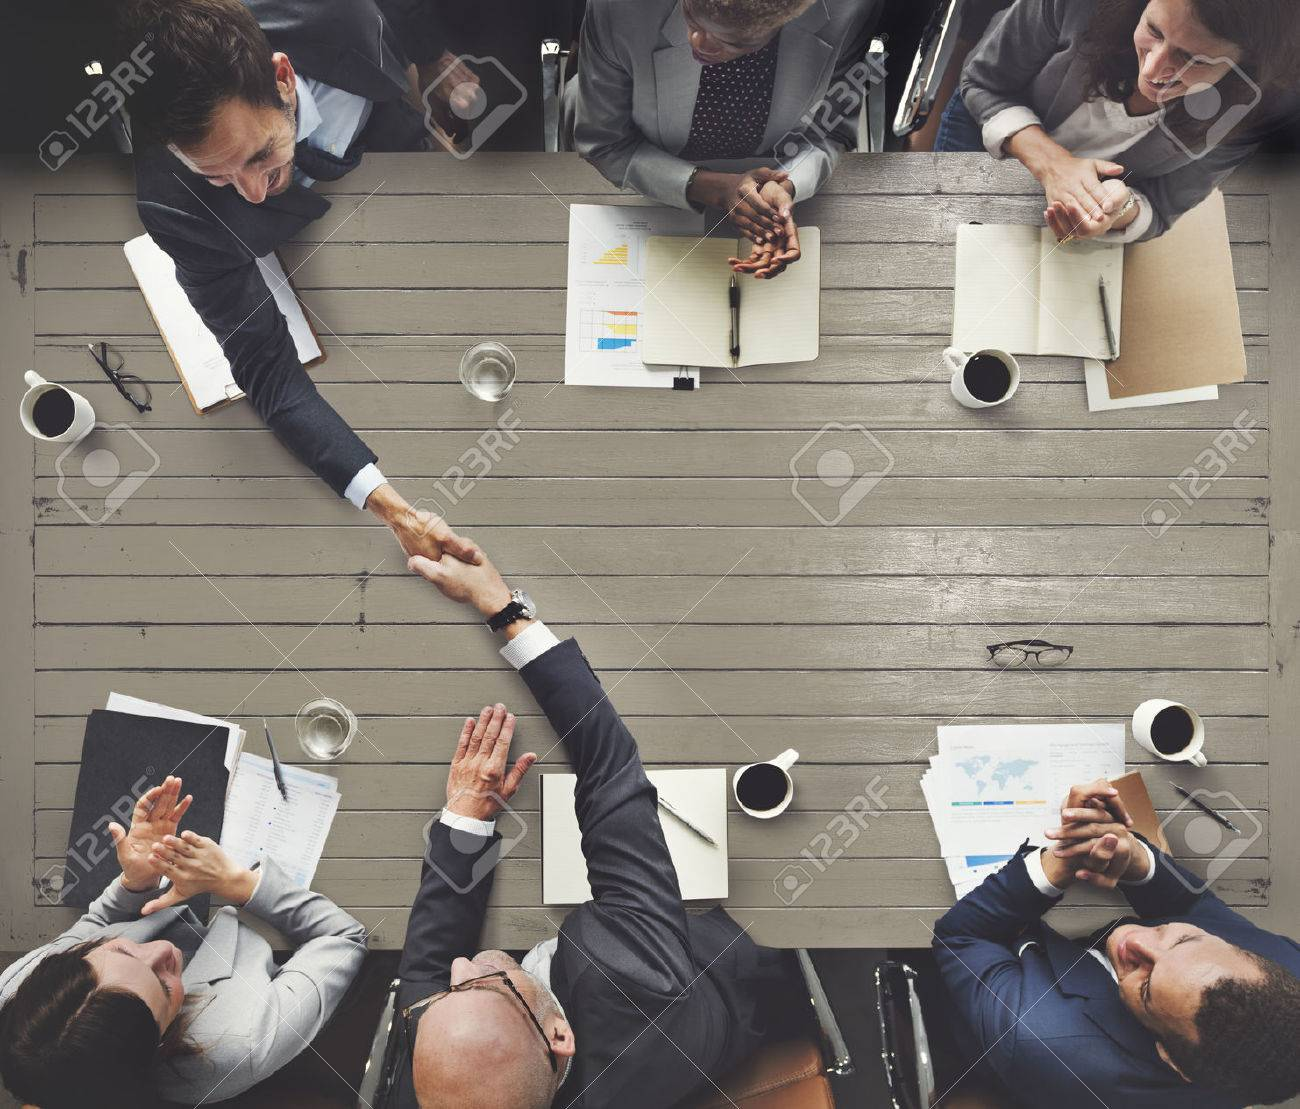 Business Meeting Team Brainstorming Corporate Concept - 57798799